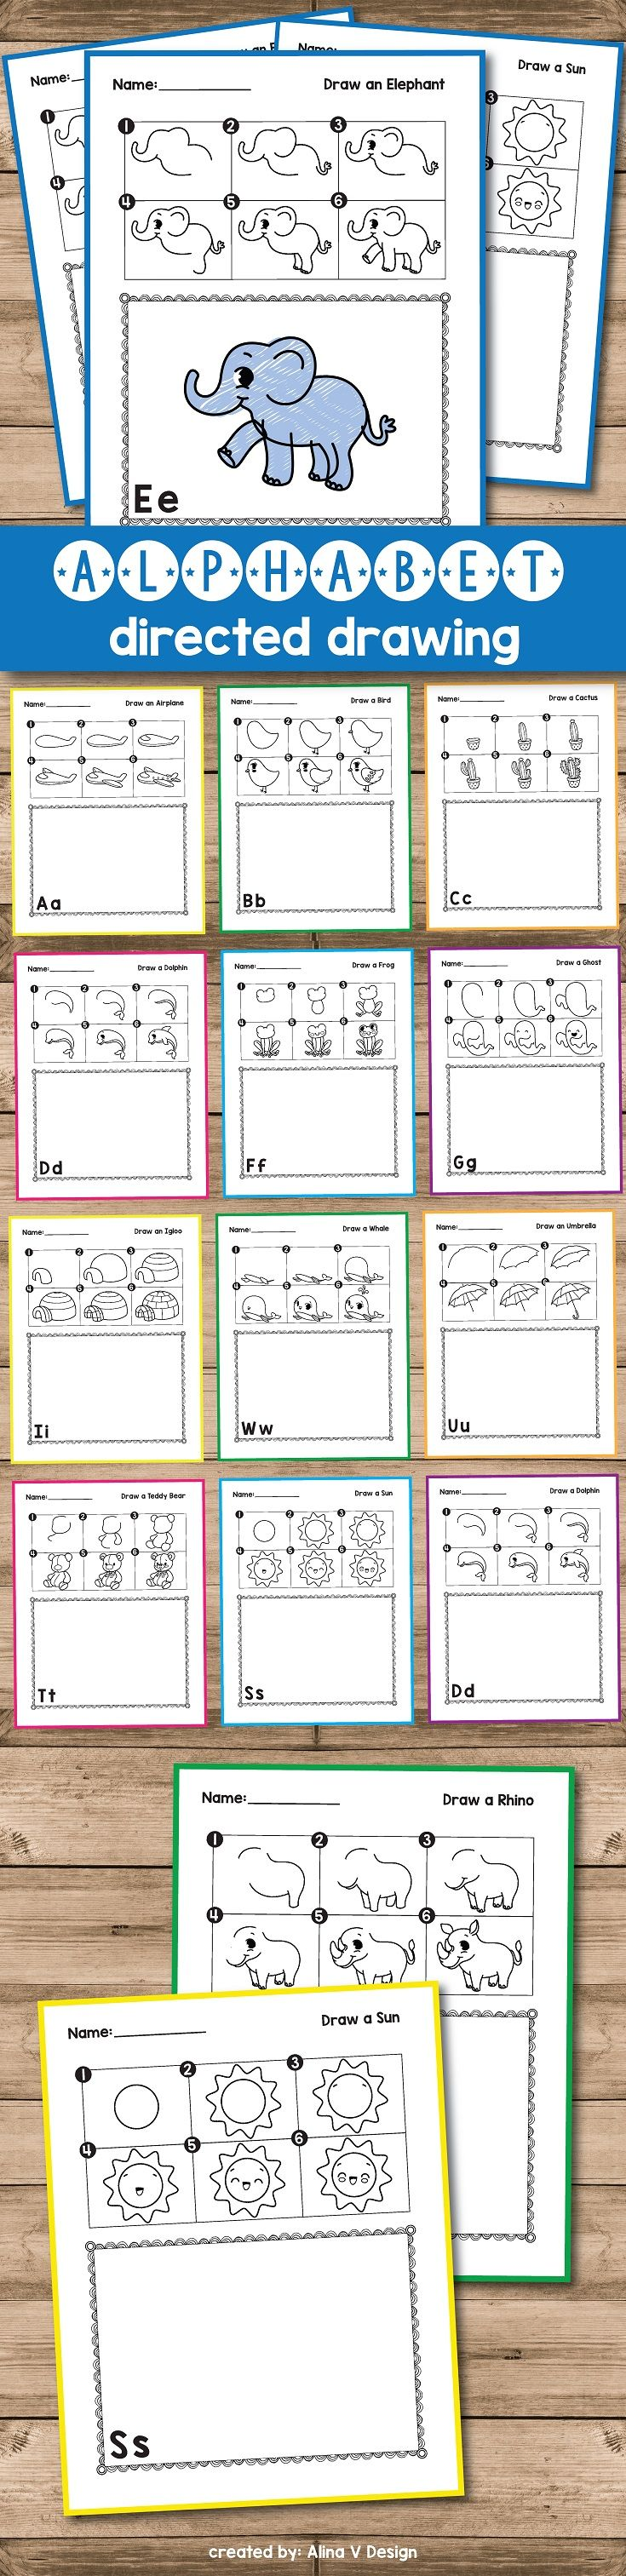 Directed Drawing for kids that will teach them step by step how to draw by following directions in a fun and engaging way. Your kindergarten, preschool or first grade students will love these cute animals. They can choose from adorable frogs, cute lions, fish, penguins and even robots .This activity includes 26 directed drawing pages + 26 alphabet worksheets that you can use this fall, for back to school or for art therapy .